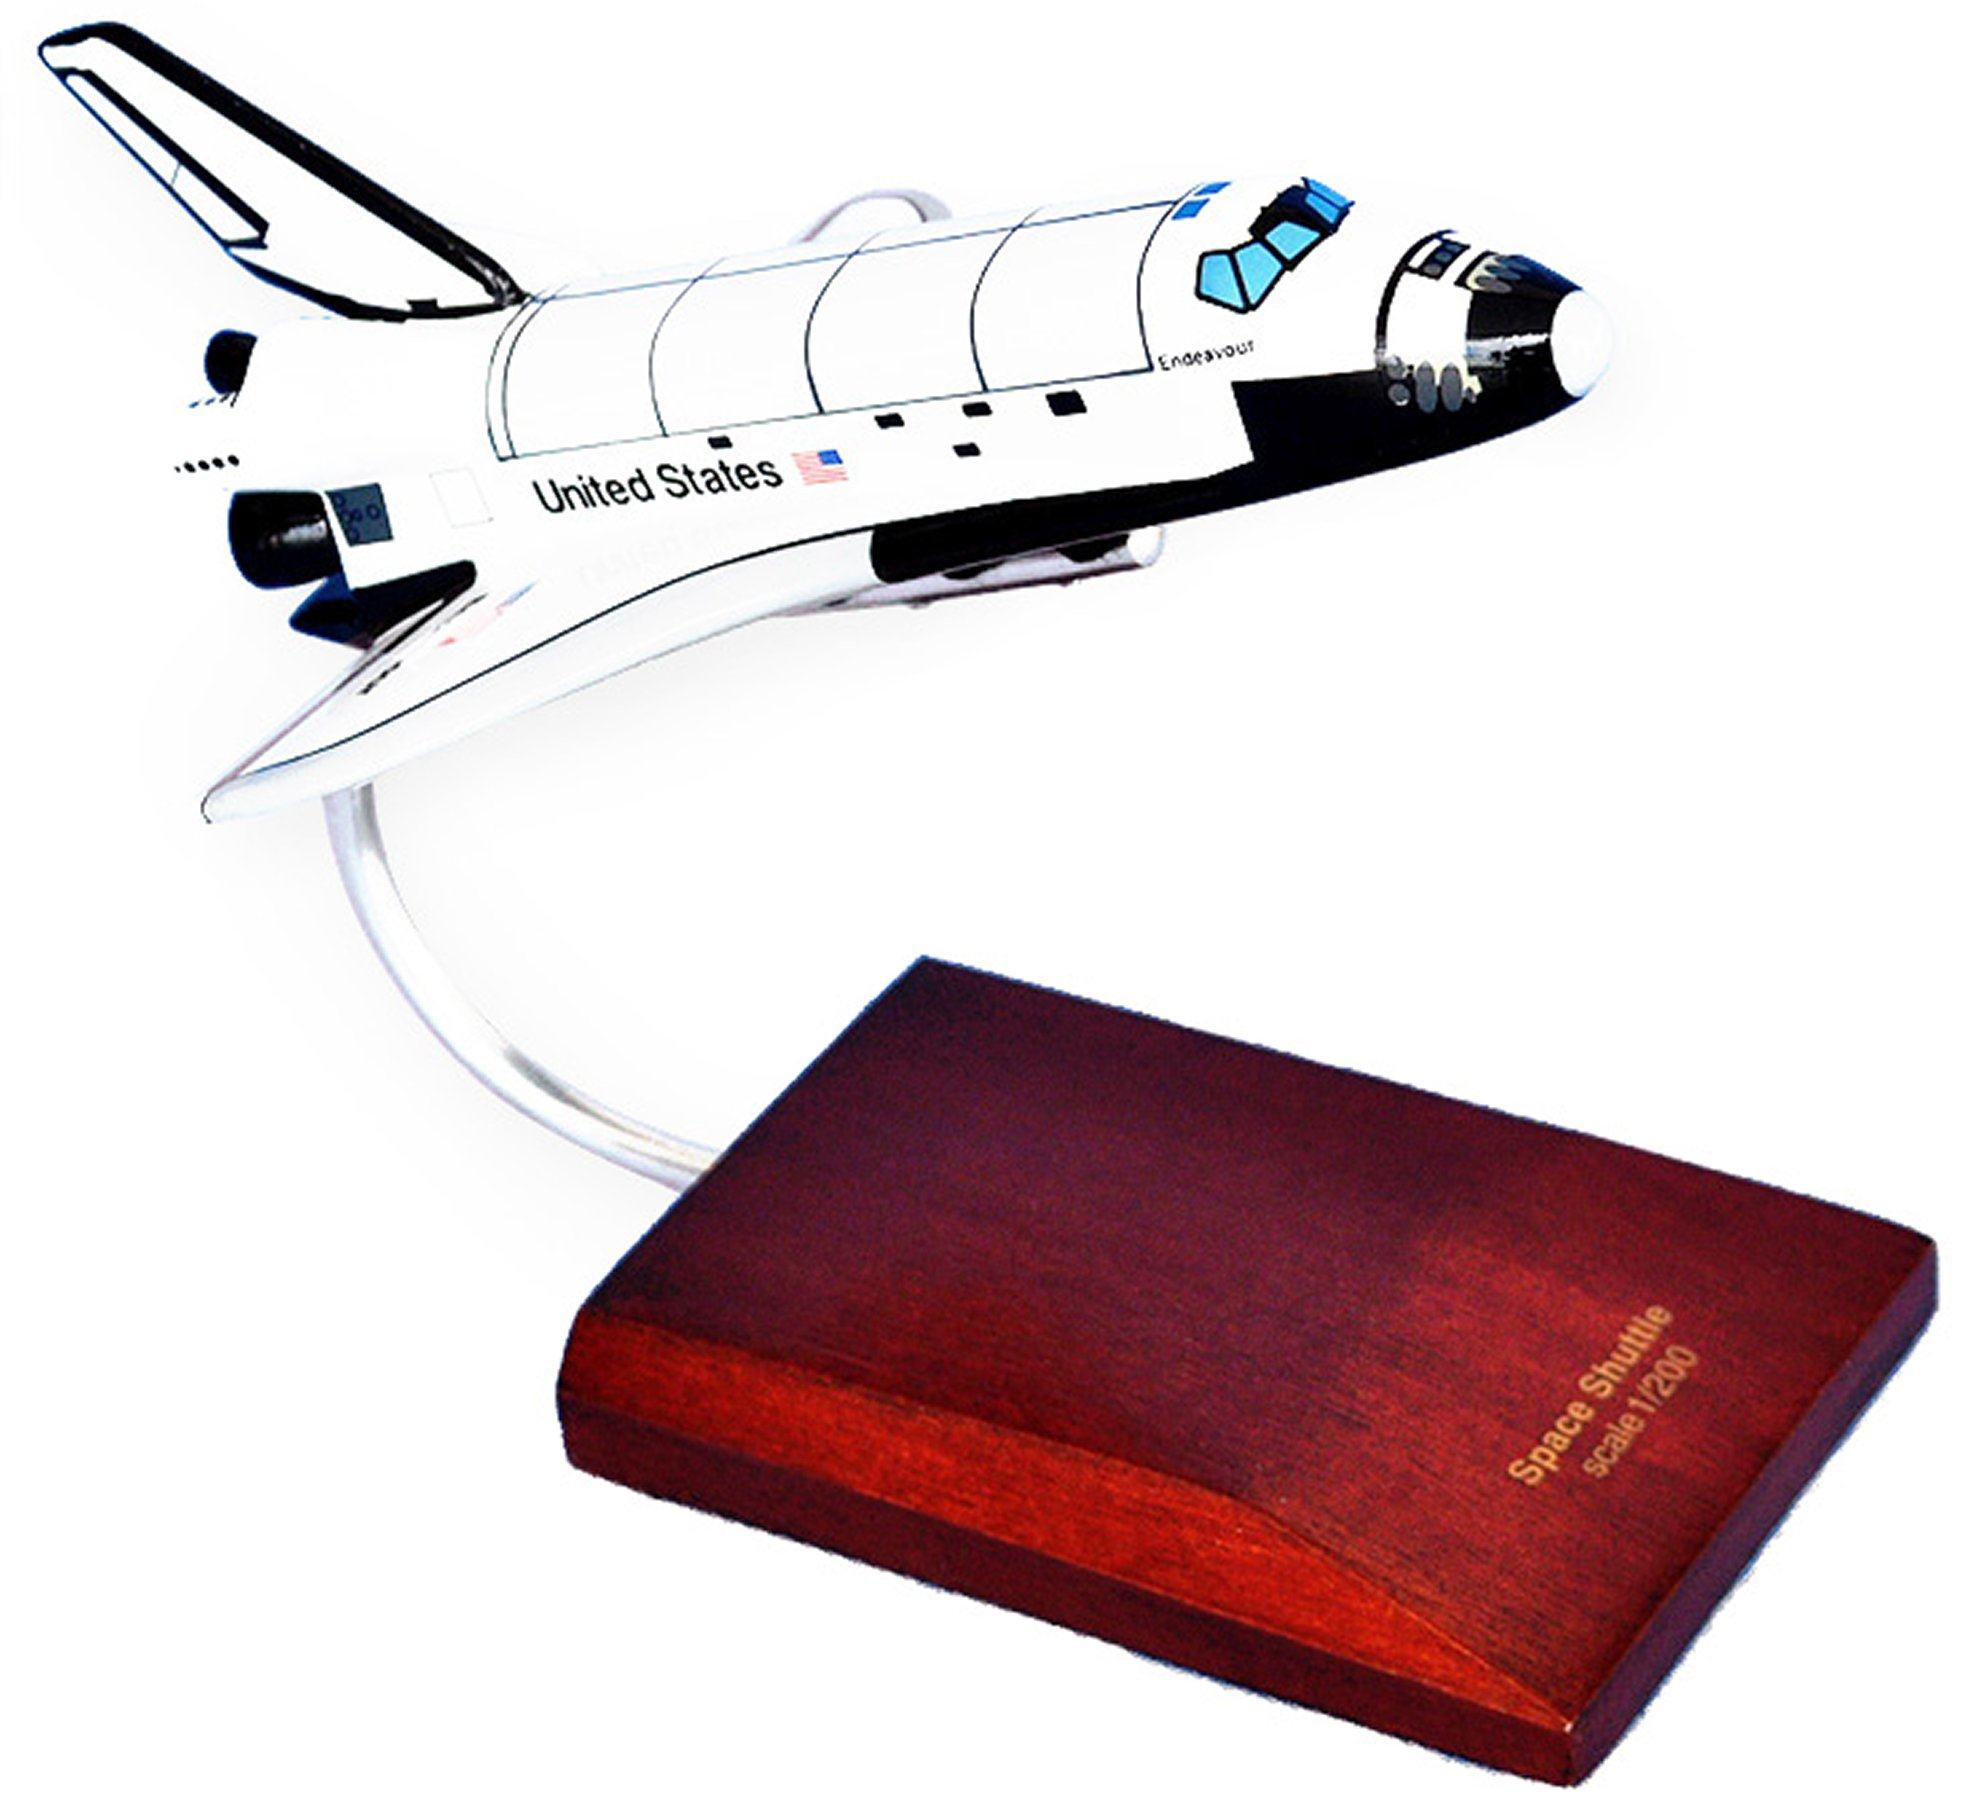 Mastercraft Collection Orbiter Endeavour Space Shuttle Model Scale:1/200